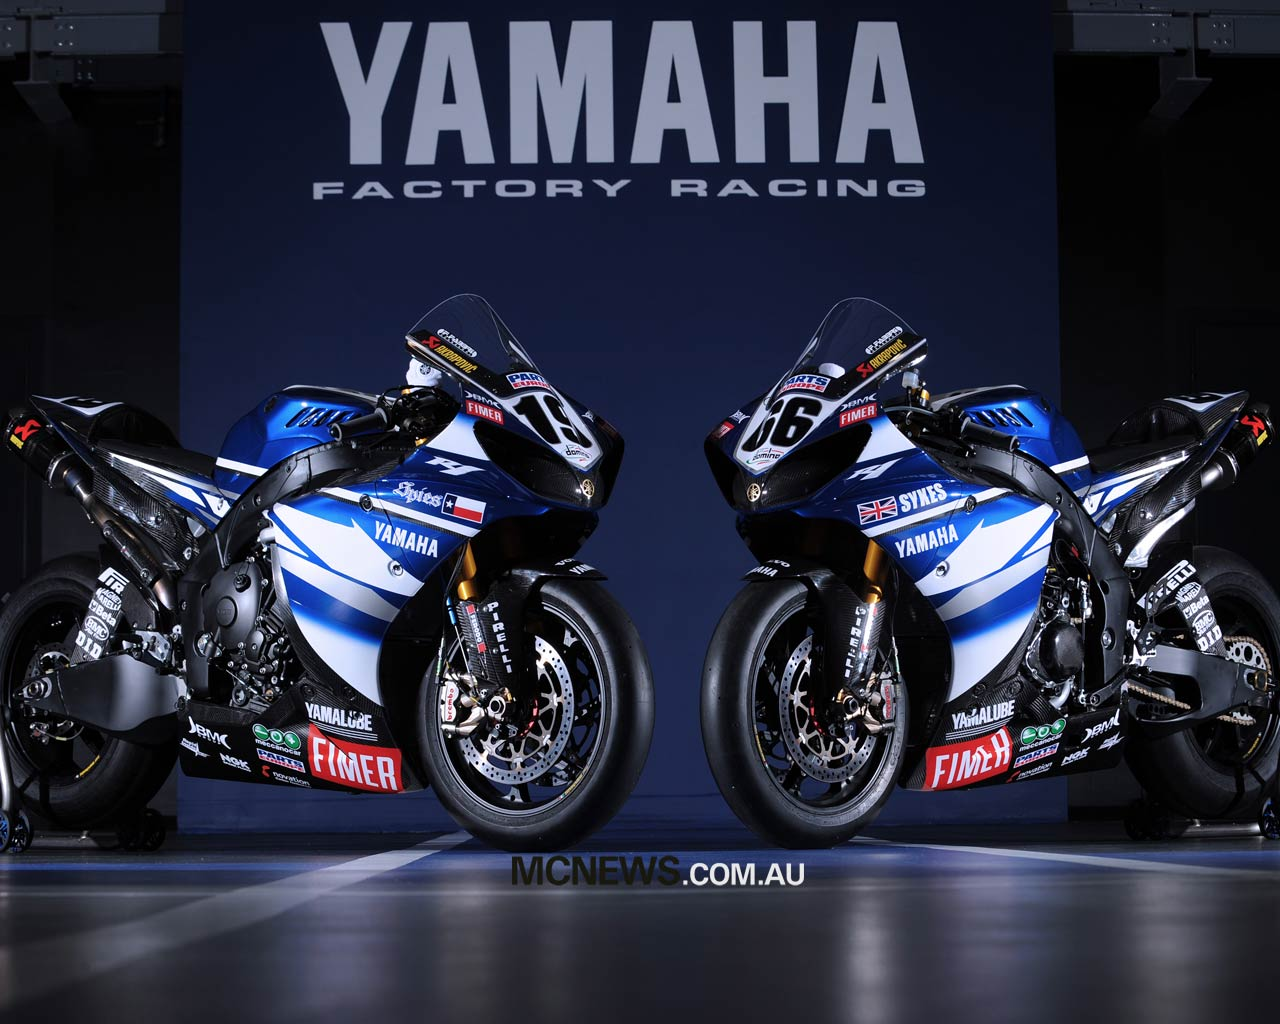 yamaha wallpaper 1280x1024 1667